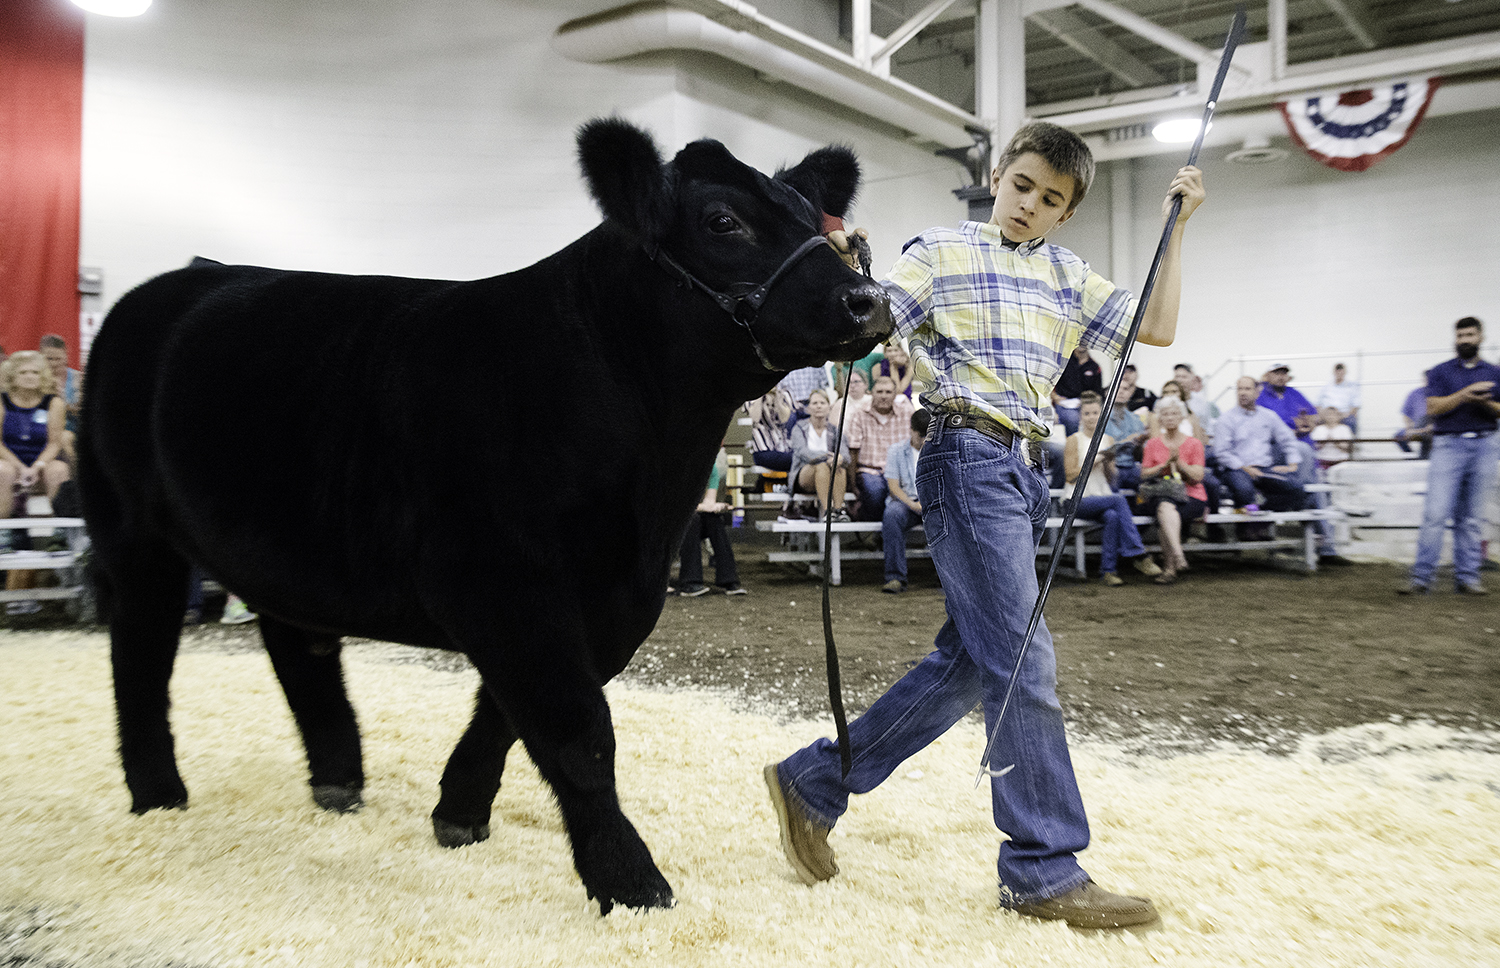 Adam Miller leads Taco, his Grand Champion Steer, down the aisle at the Governor's Sale of Champions at the Livestock Center at the Illinois State Fair Tuesday, Aug. 14, 2018. The steer sold for $60,000. [Ted Schurter/The State Journal-Register]